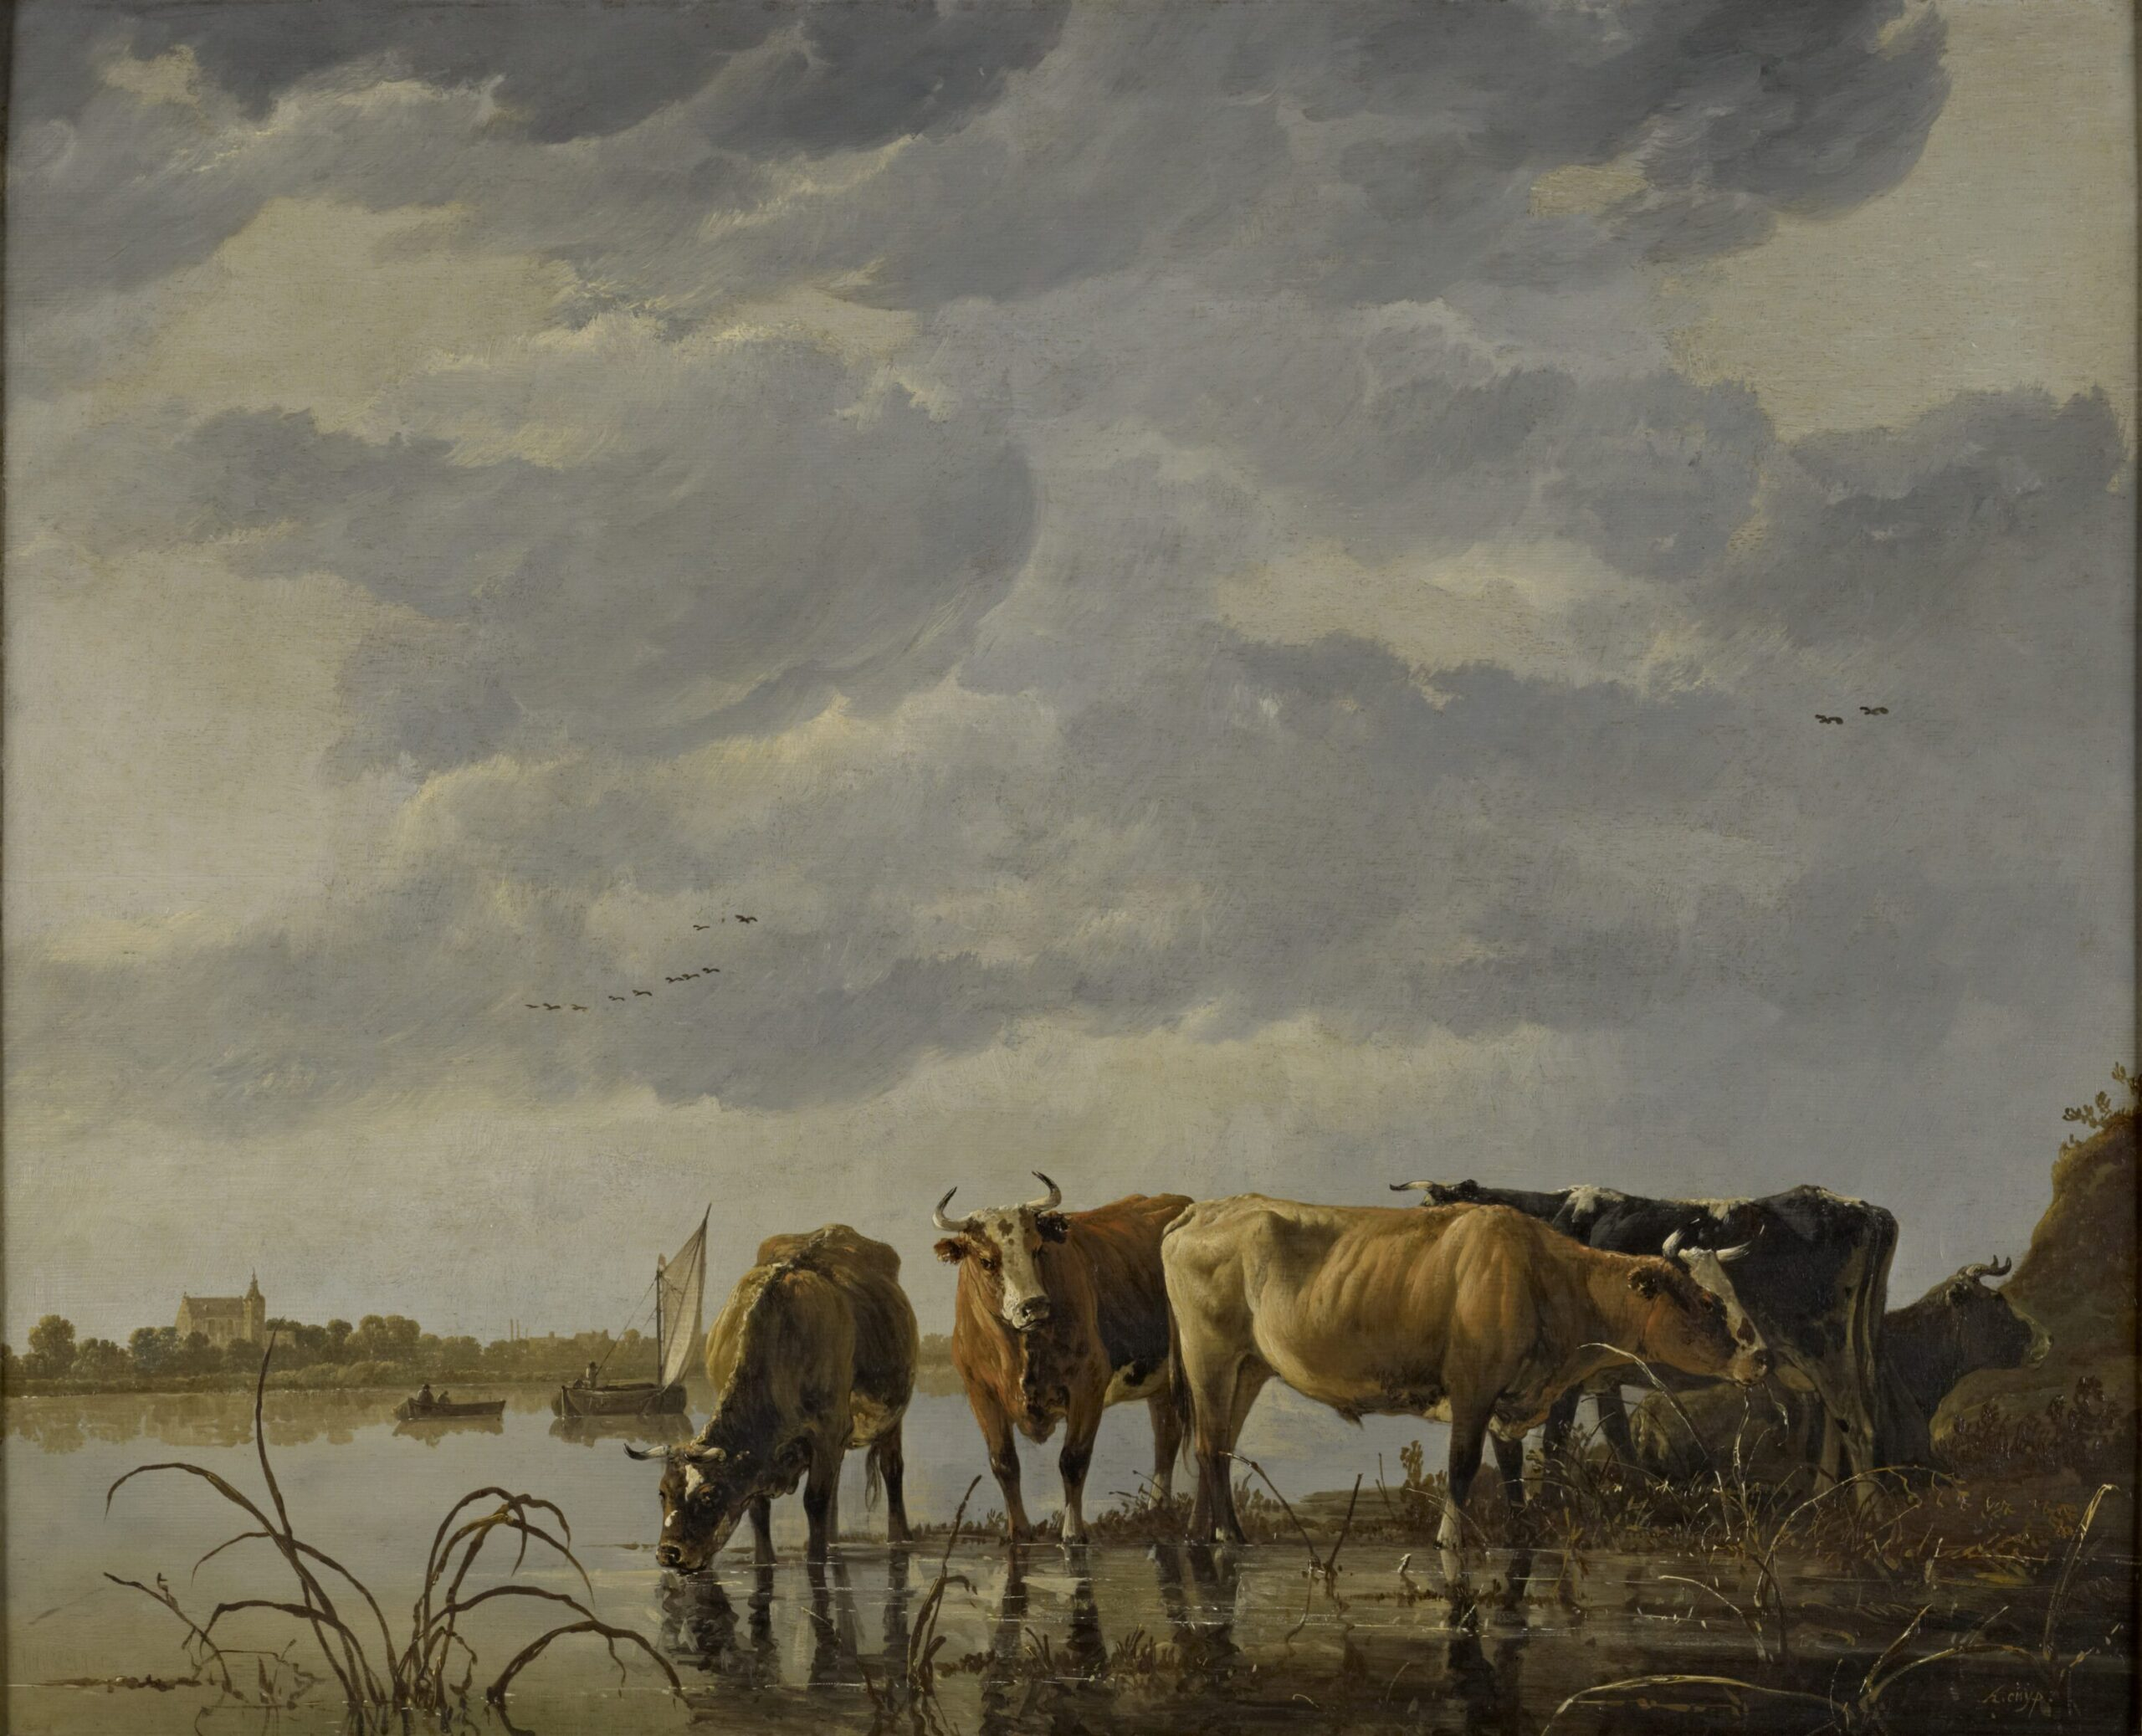 Aelbert Cuyp (1620-1691), Cattle Watering by an Estuary, ca. 1650 oil on panel, 59.7 x 72.4 cmThe Bute Collection at Mount Stuart